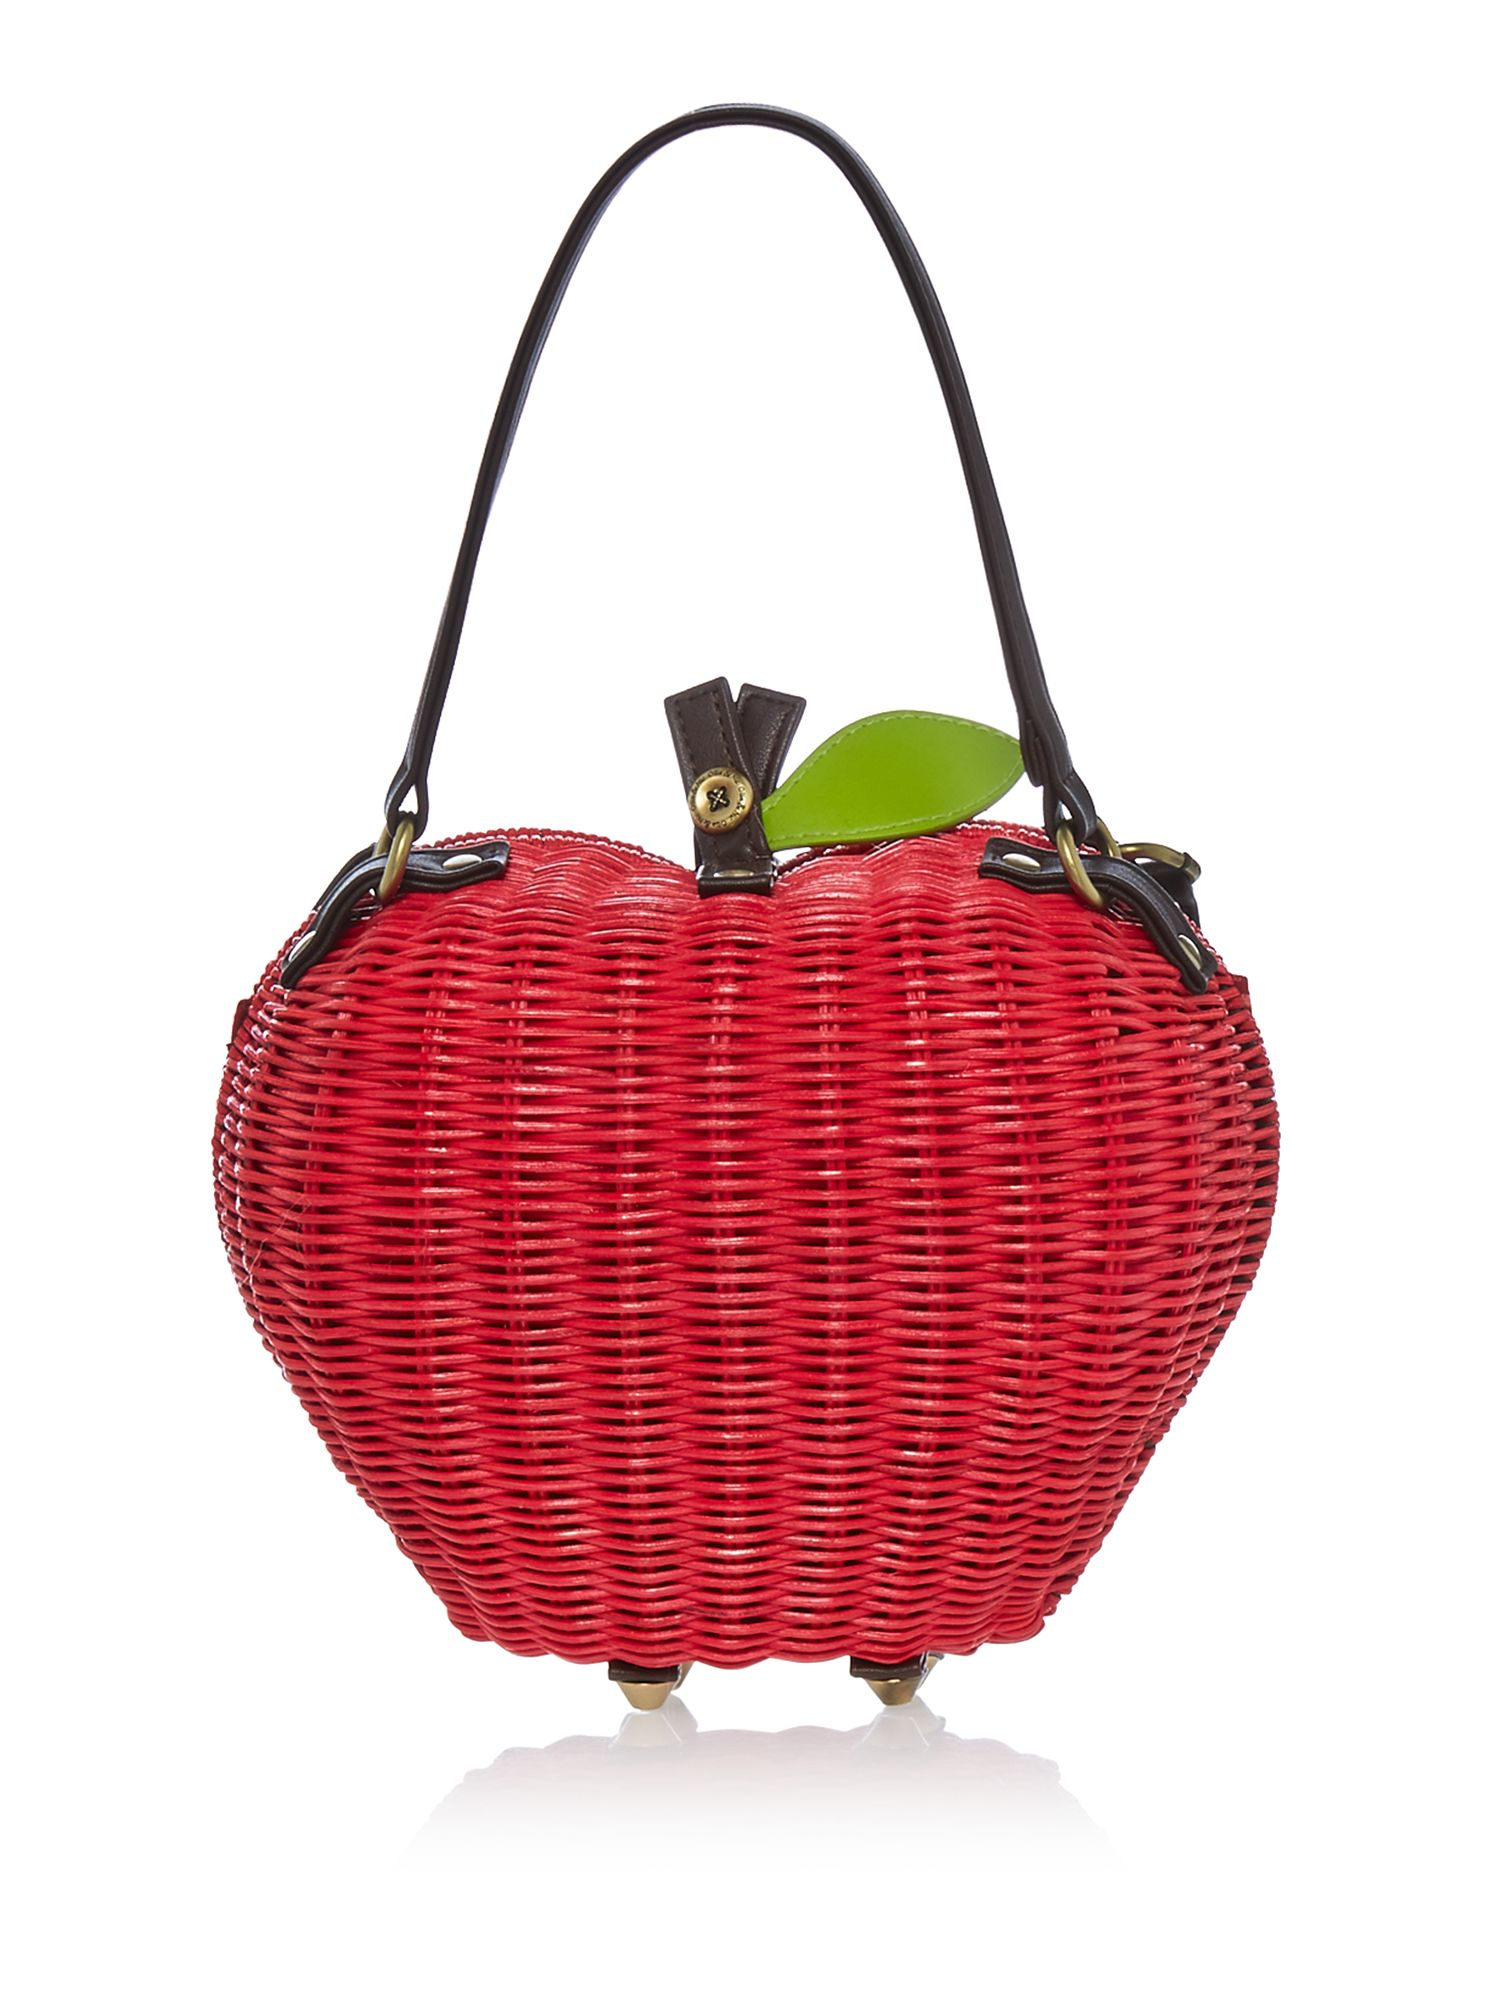 Ollie & Nic Apple Bag, Red